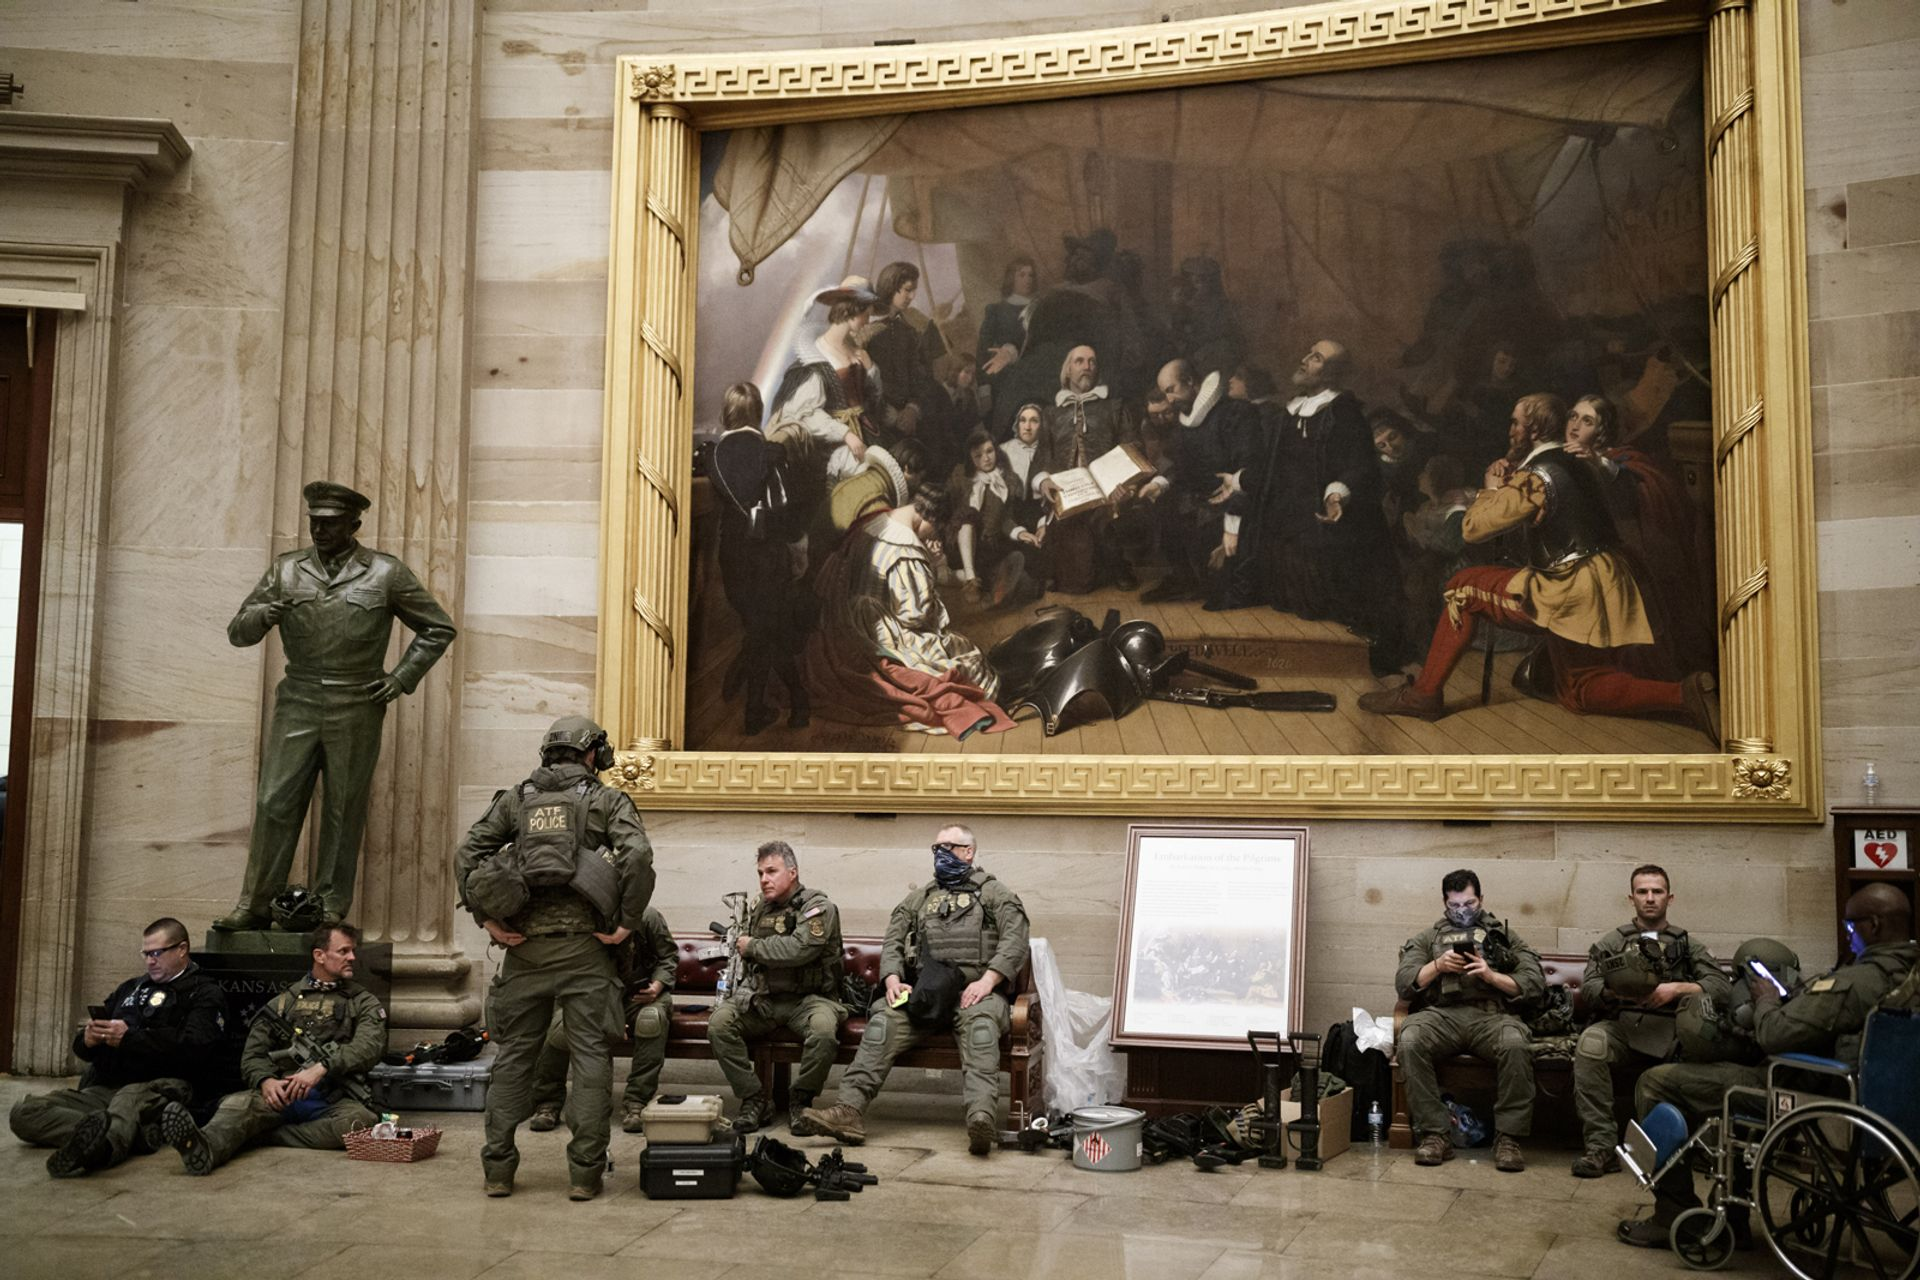 Members of law enforcement rest beneath Robert Walter Weir's painting Embarkation of the Pilgrims (around 1837) in the rotunda of the US Capitol in Washington, DC. Photo: Ting Shen/Bloomberg via Getty Images